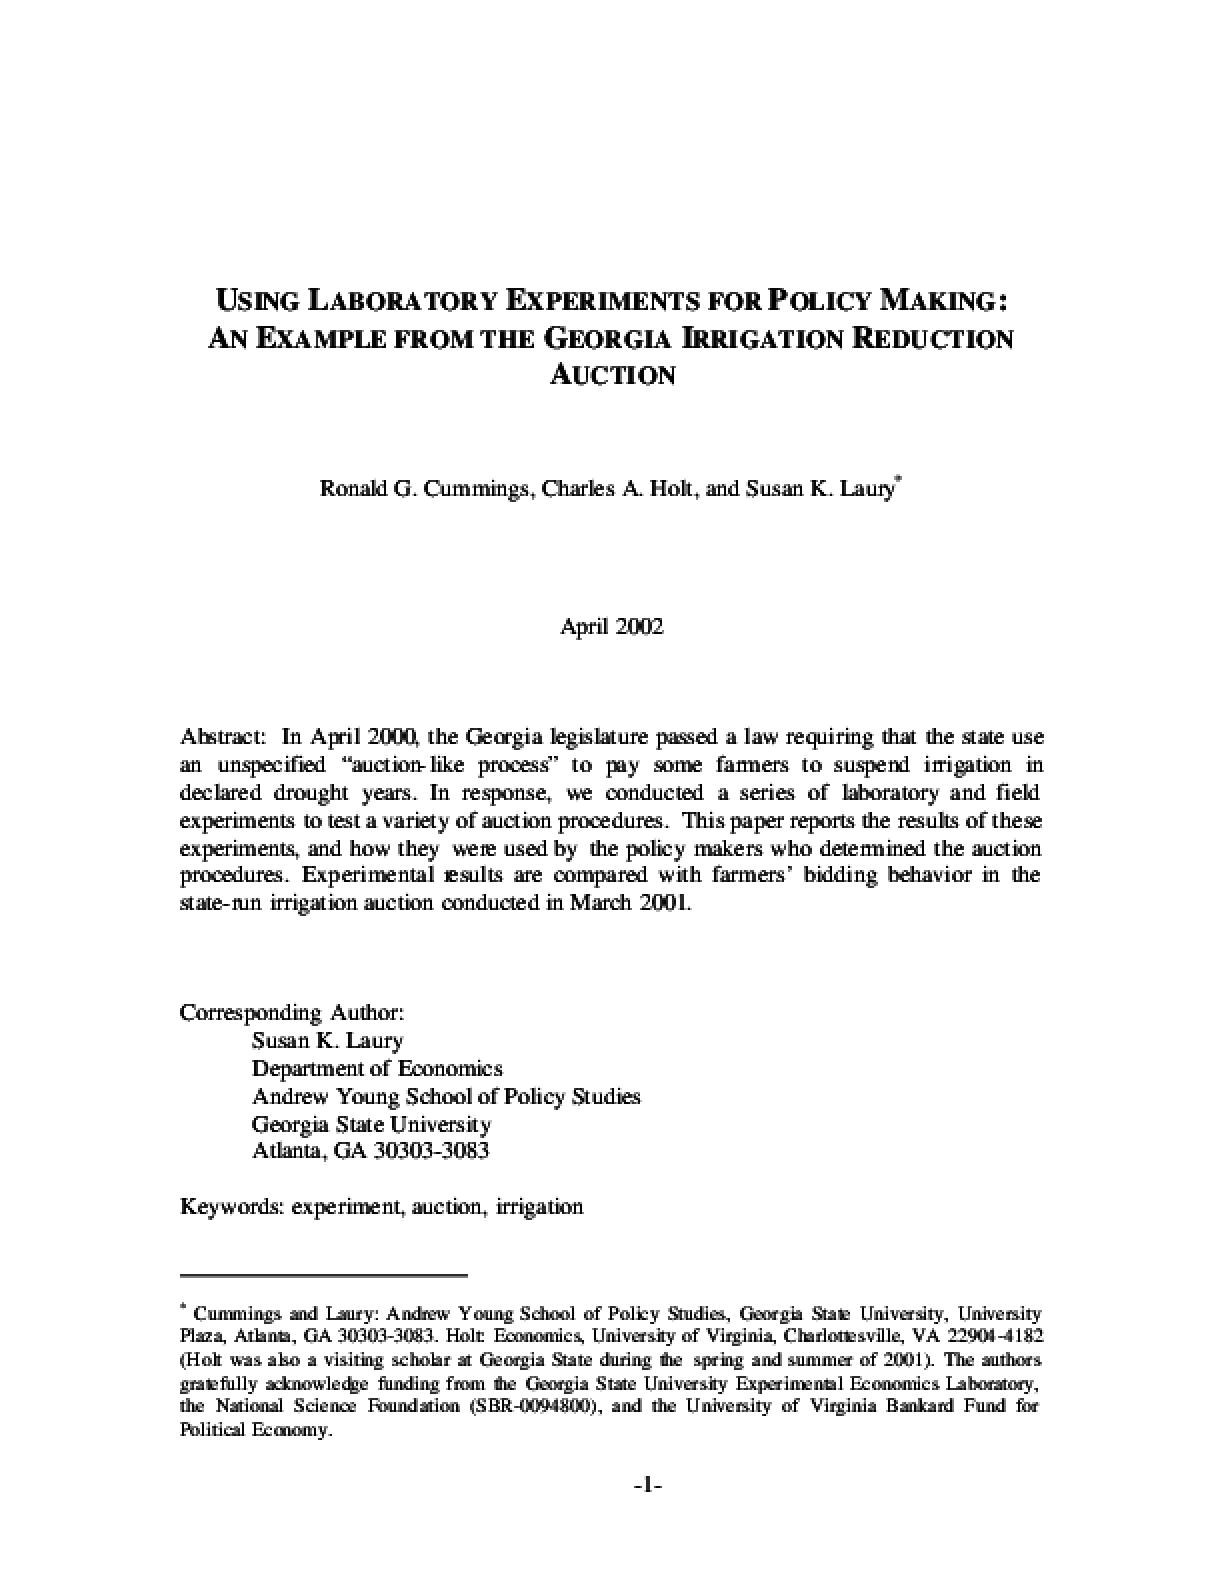 Using Laboratory Experiments For Policy Making: An Example From The Georgia Irrigation Reduction Auction